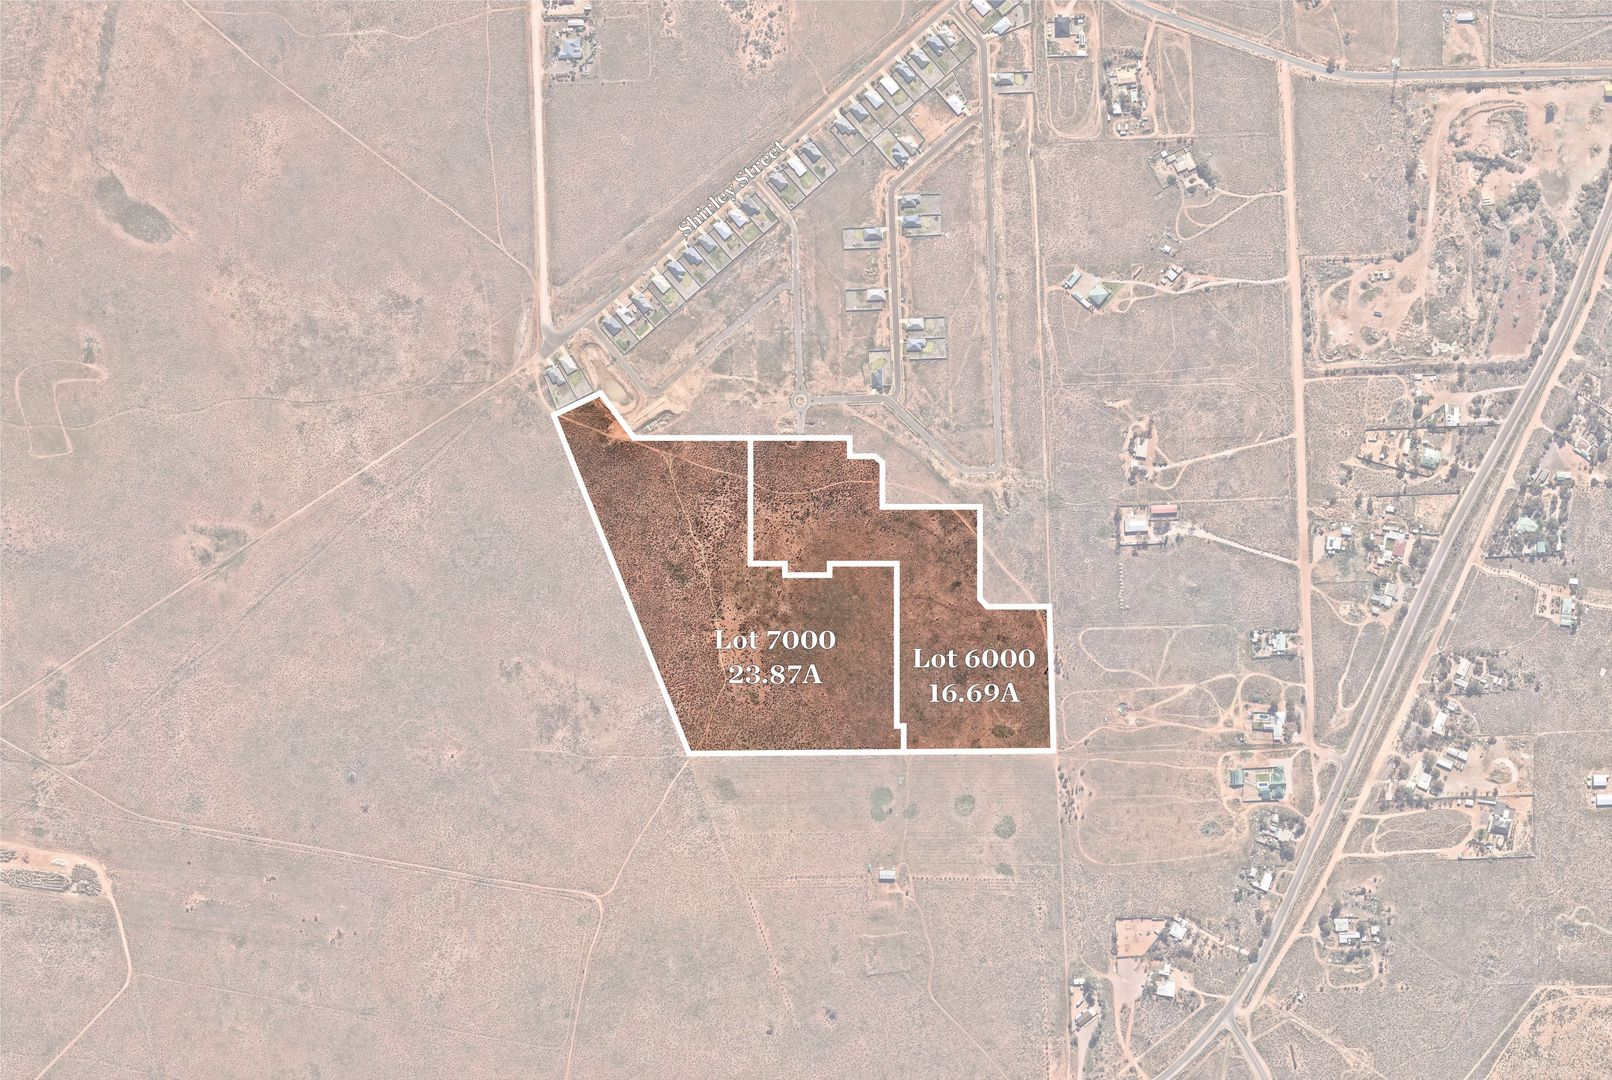 6000-700/6000 Shirley Street, Port Augusta West SA 5700, Image 0